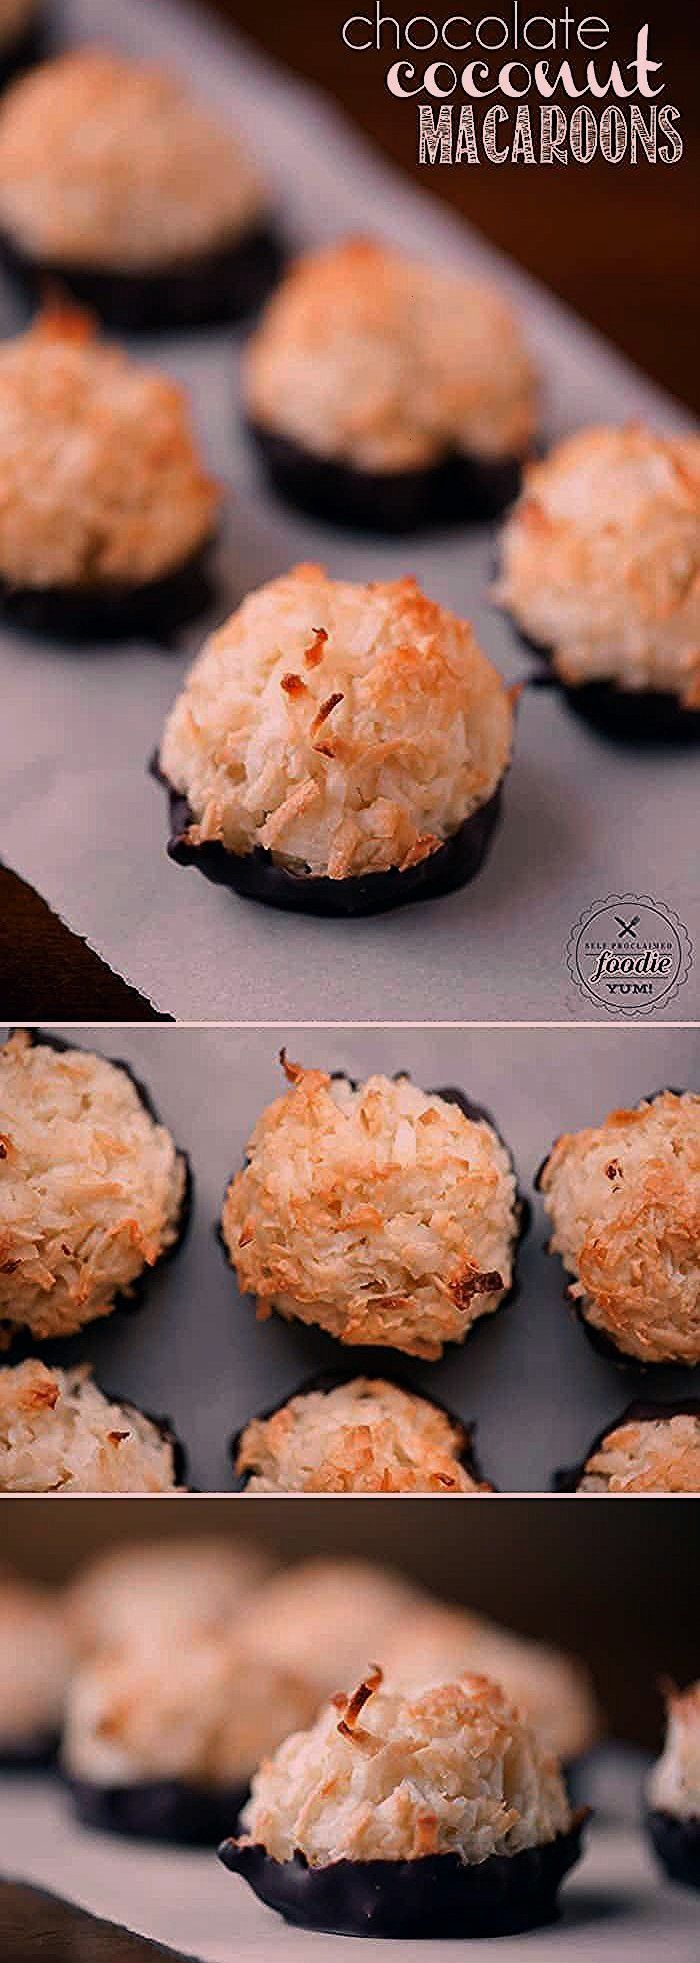 Coconut Macaroons are a super easy toasted coconut cookie recipe made with a secret ingredient that gives them great flavorChocolate Coconut Macaroons are a super easy to...